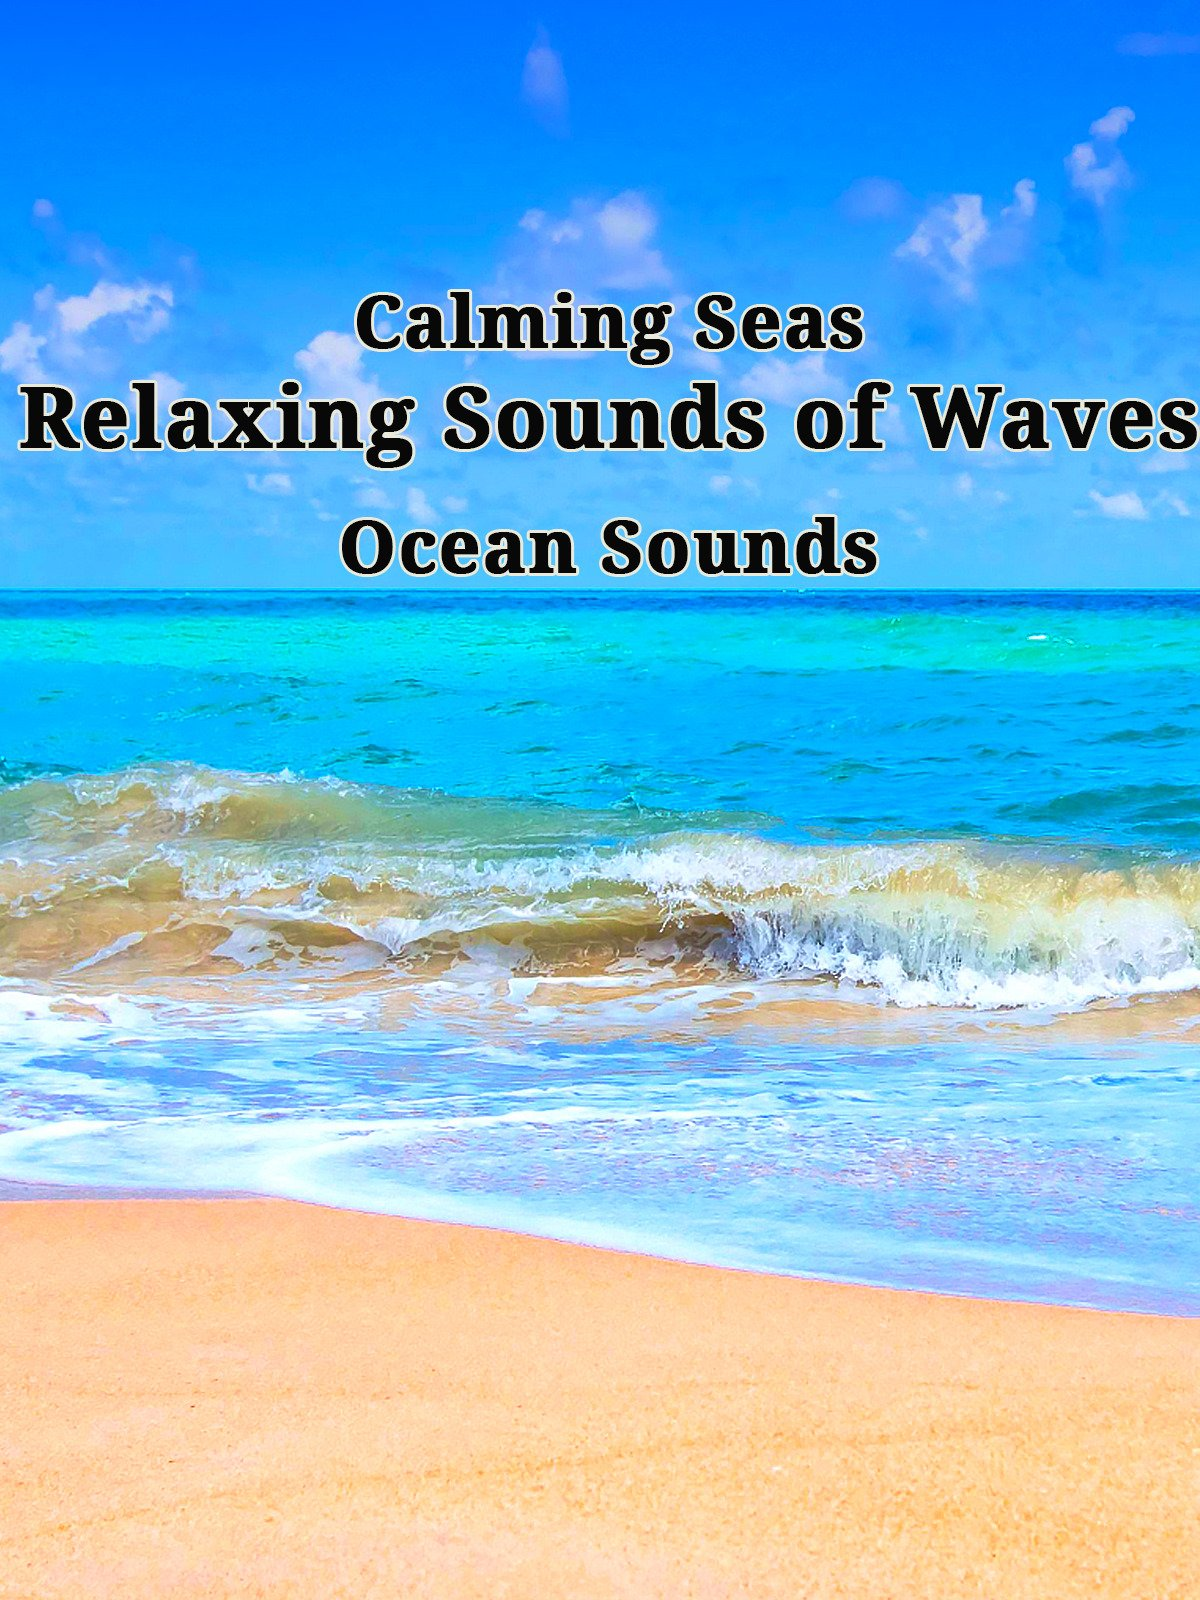 Calming Seas: Relaxing Sounds of Waves, Ocean Sounds